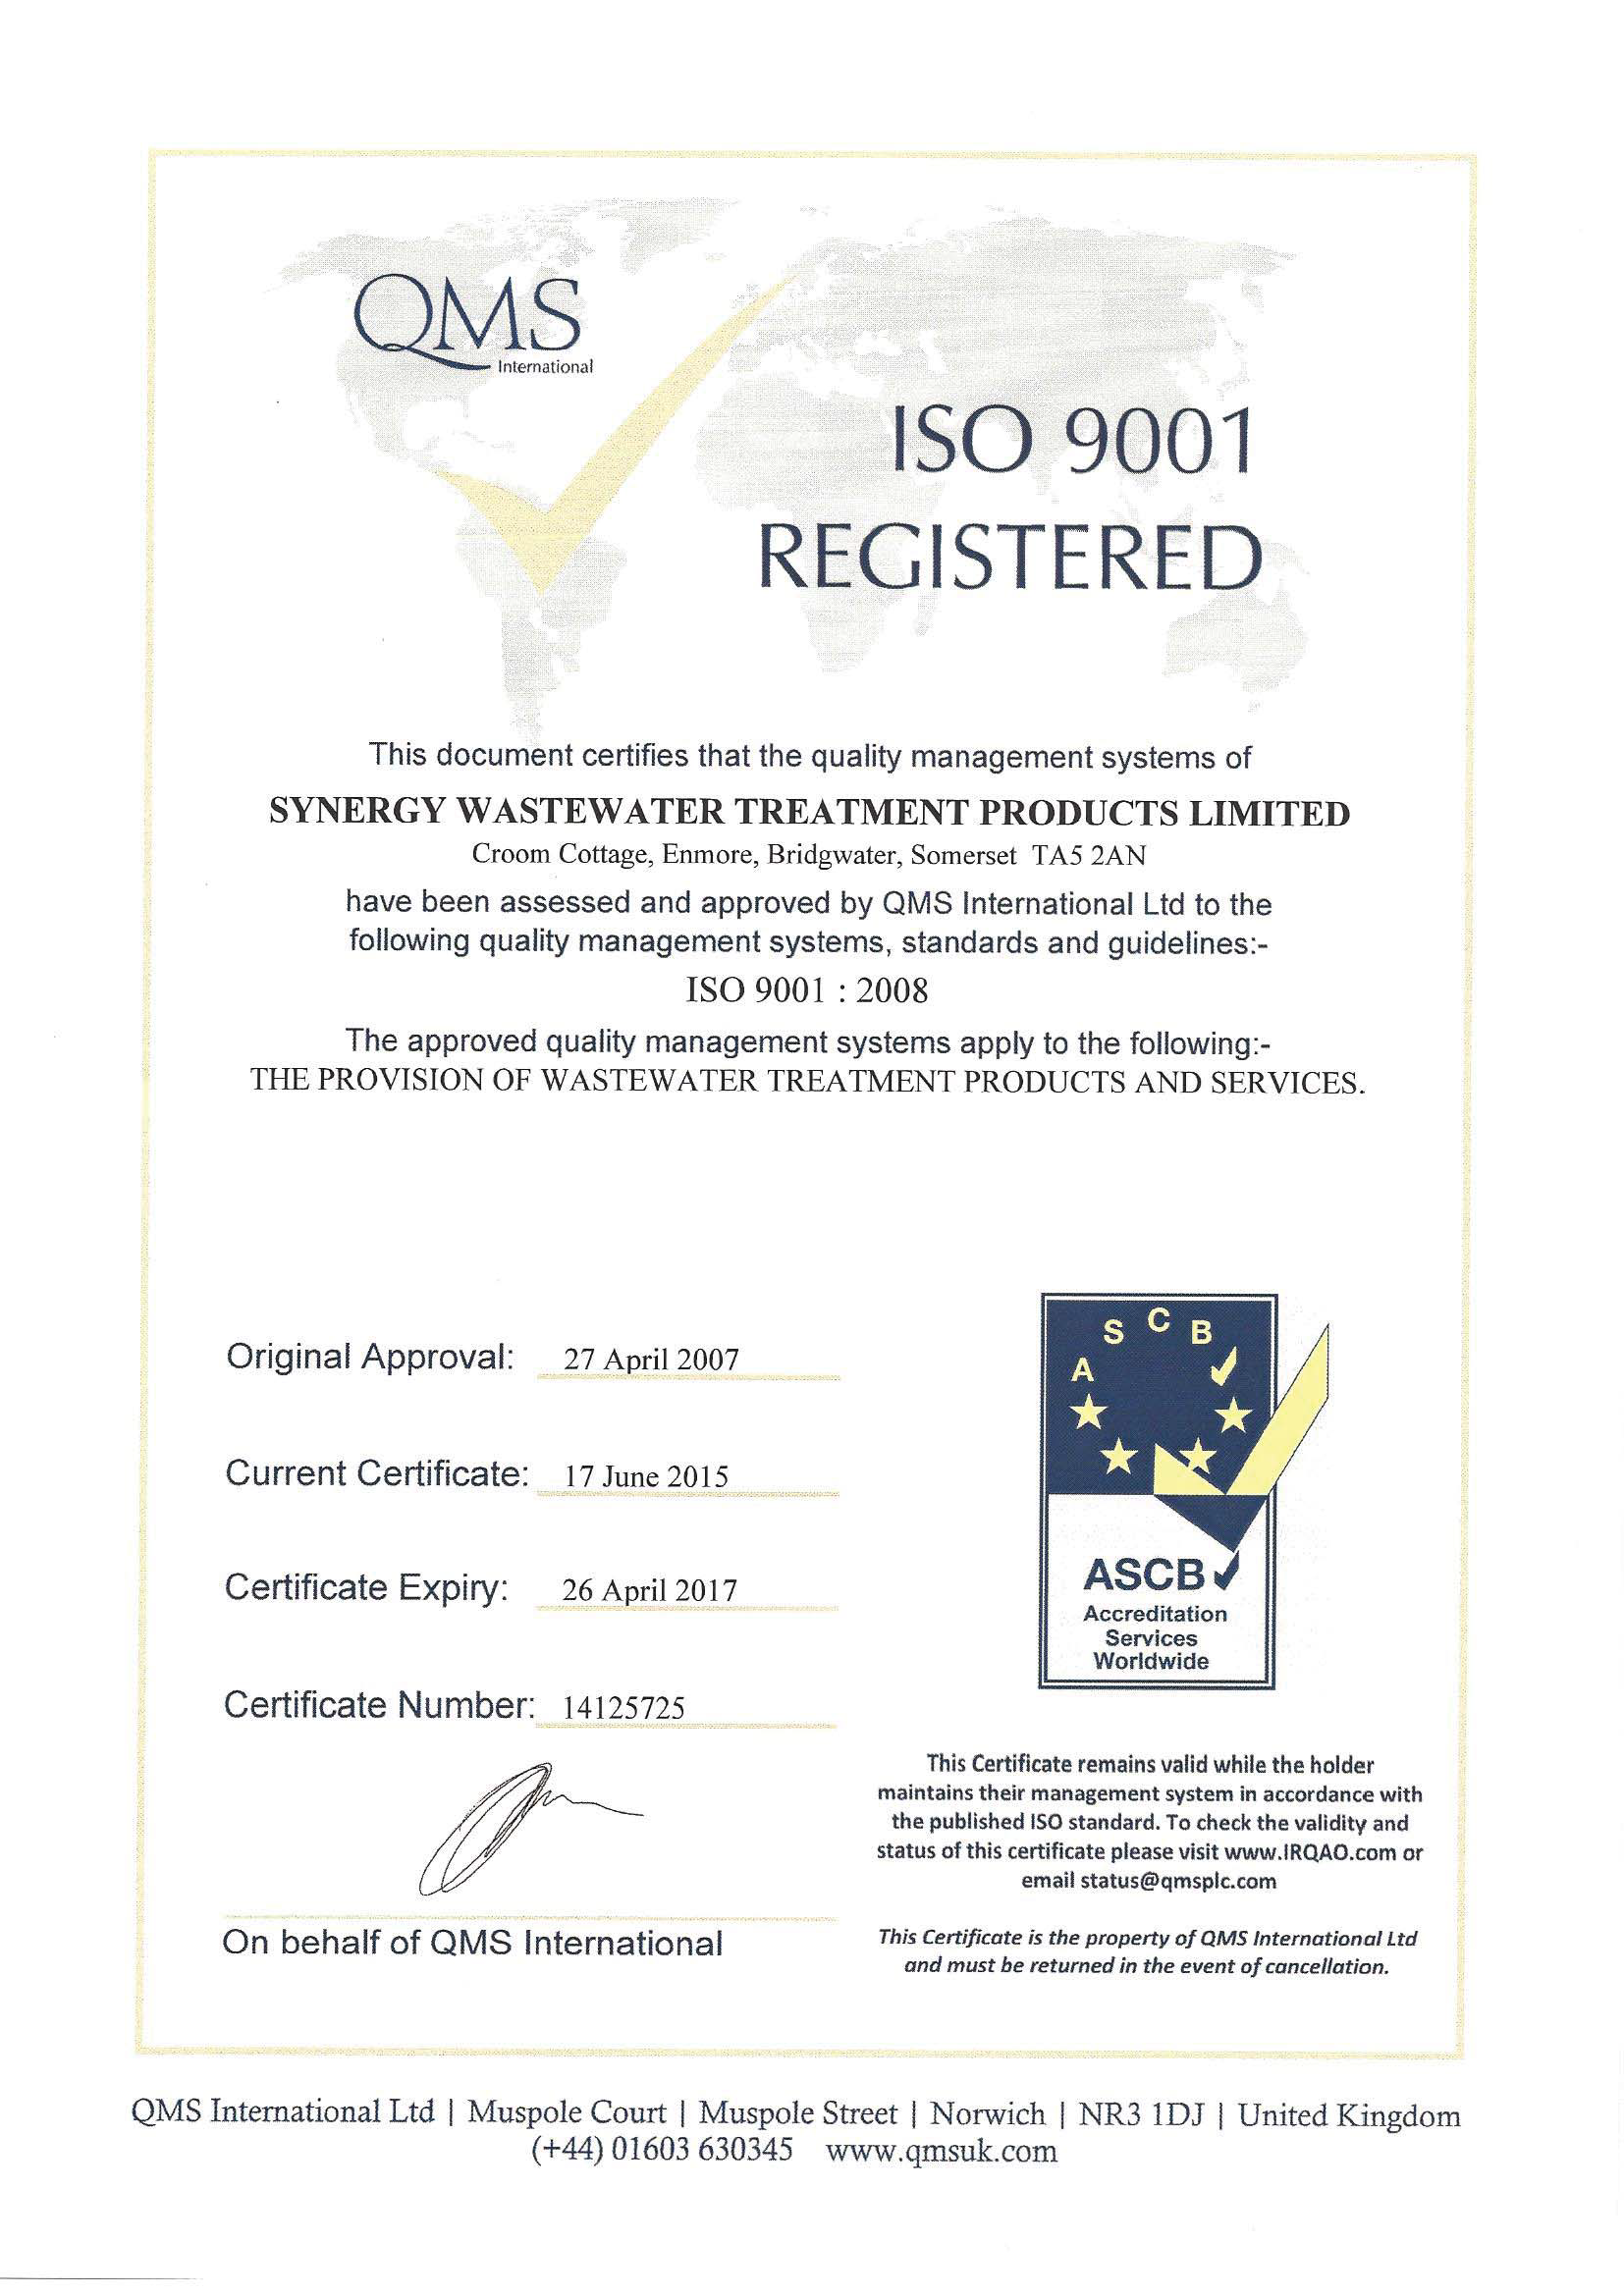 Wastewater Accreditations And Certificates For Synergy